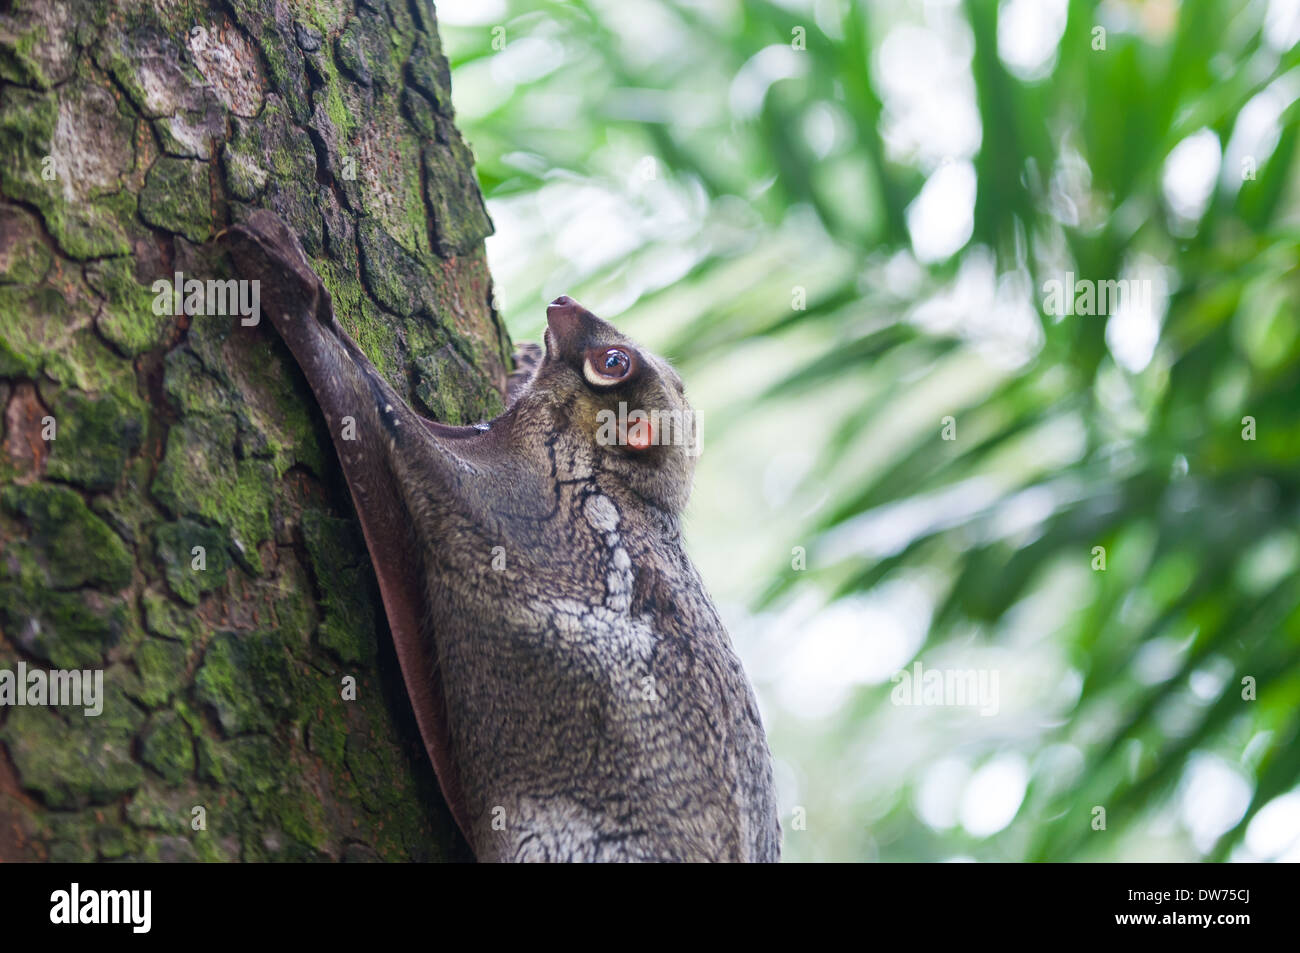 A Sunda flying lemur (Galeopterus variegatus) clings to a tree in the rainforests of Southeast Asia. - Stock Image